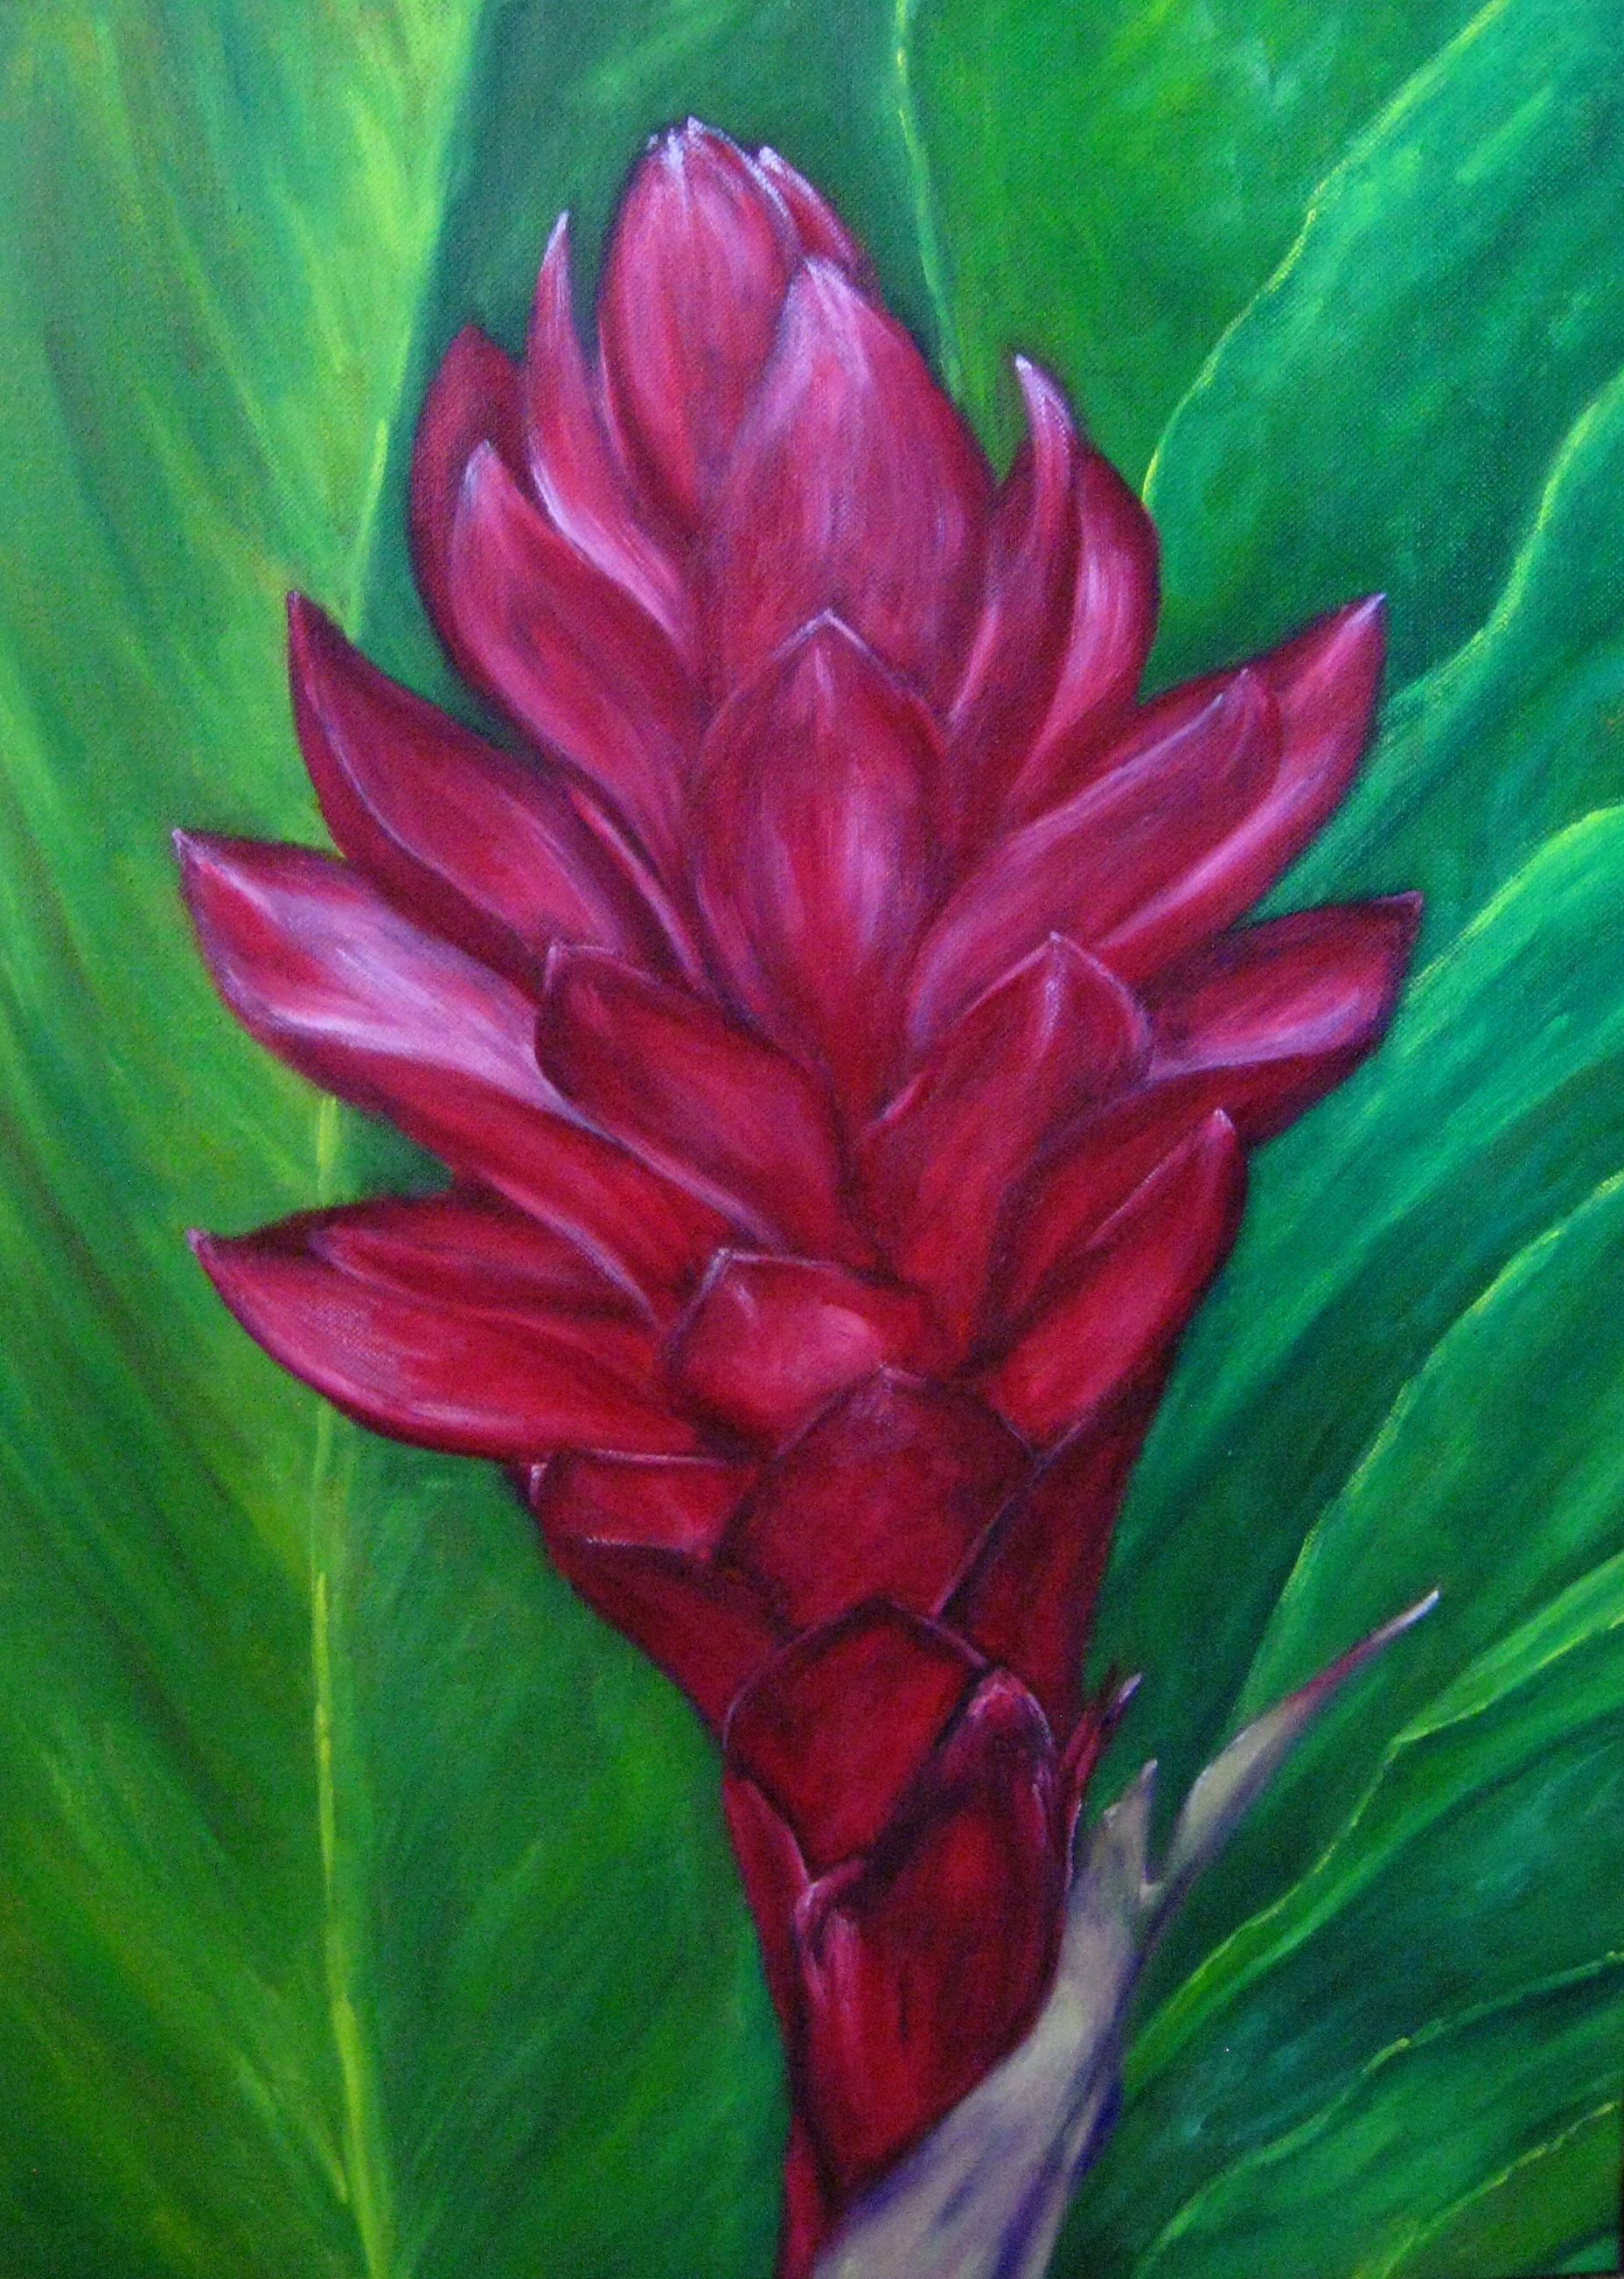 Pin By Lisa Shiroma On Flower Paintings Flower Canvas Flower Painting Painting